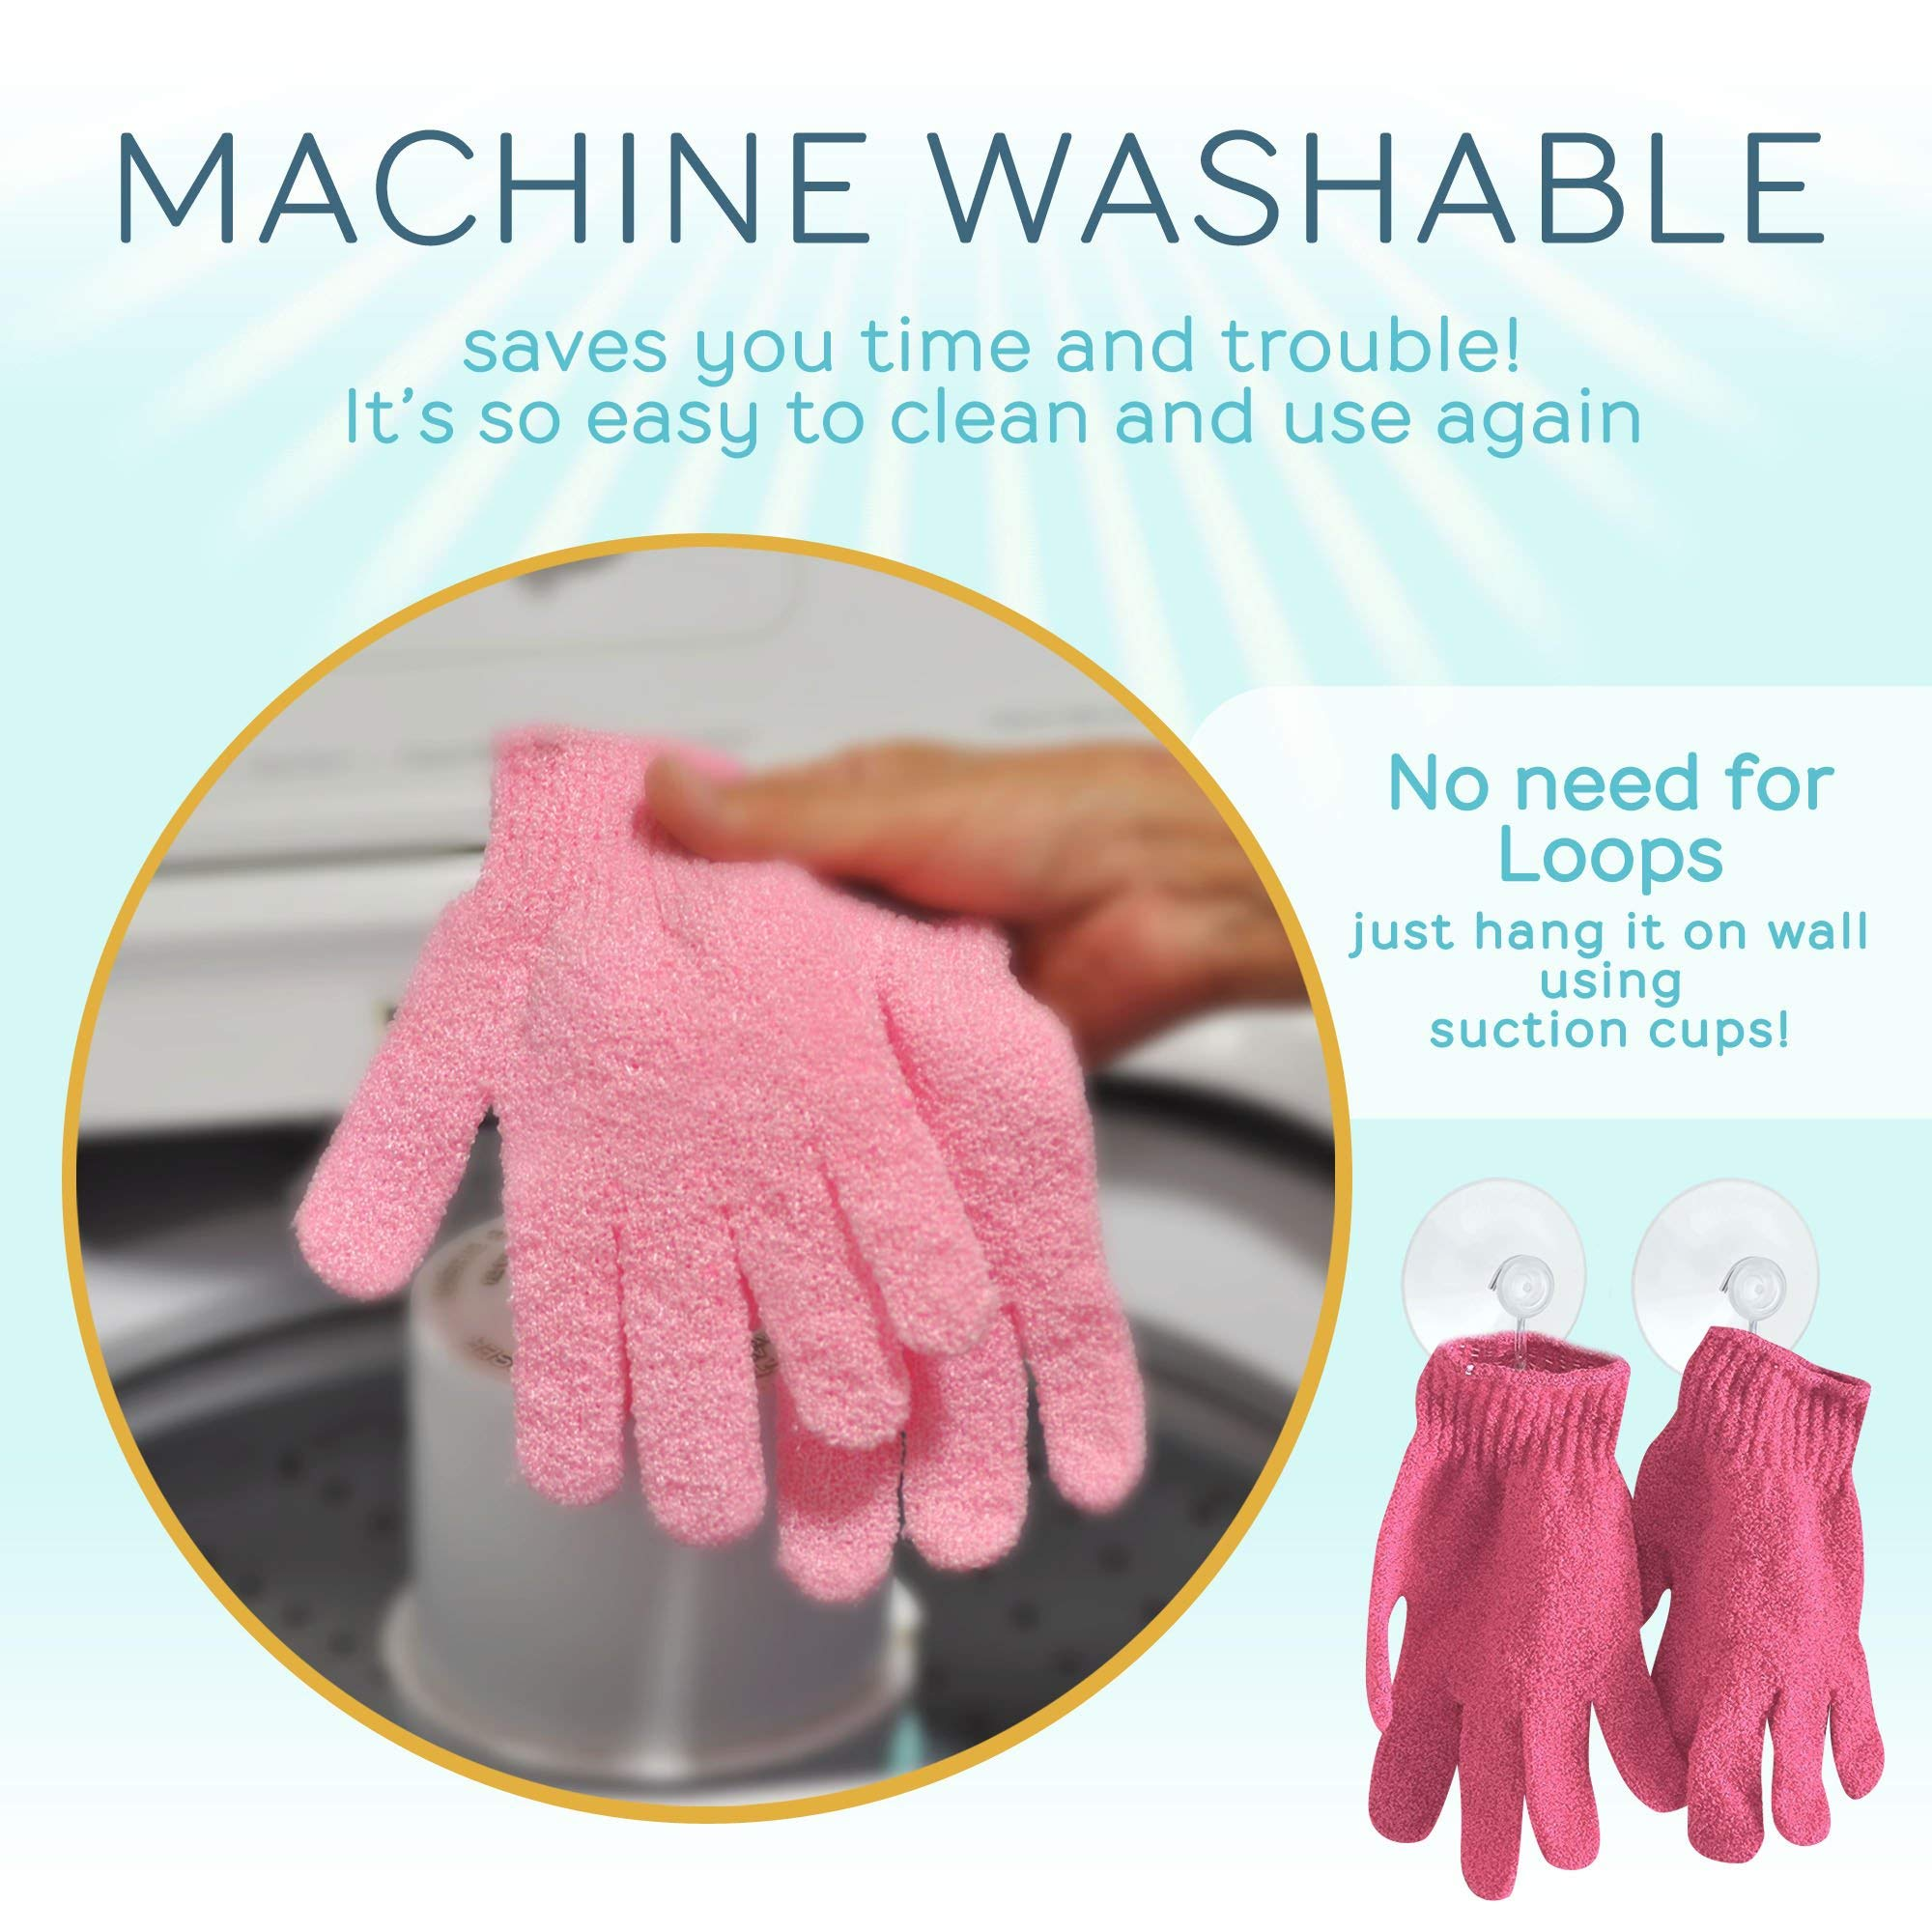 SmitCo LLC Exfoliating Gloves - 4 Pairs Full Body Scrub - Shower or Bath Spa Exfoliation Accessories For Men and Women - Scrubs Away Dead Cells For Soft Skin and Improves Blood Circulation by SMITCO (Image #8)